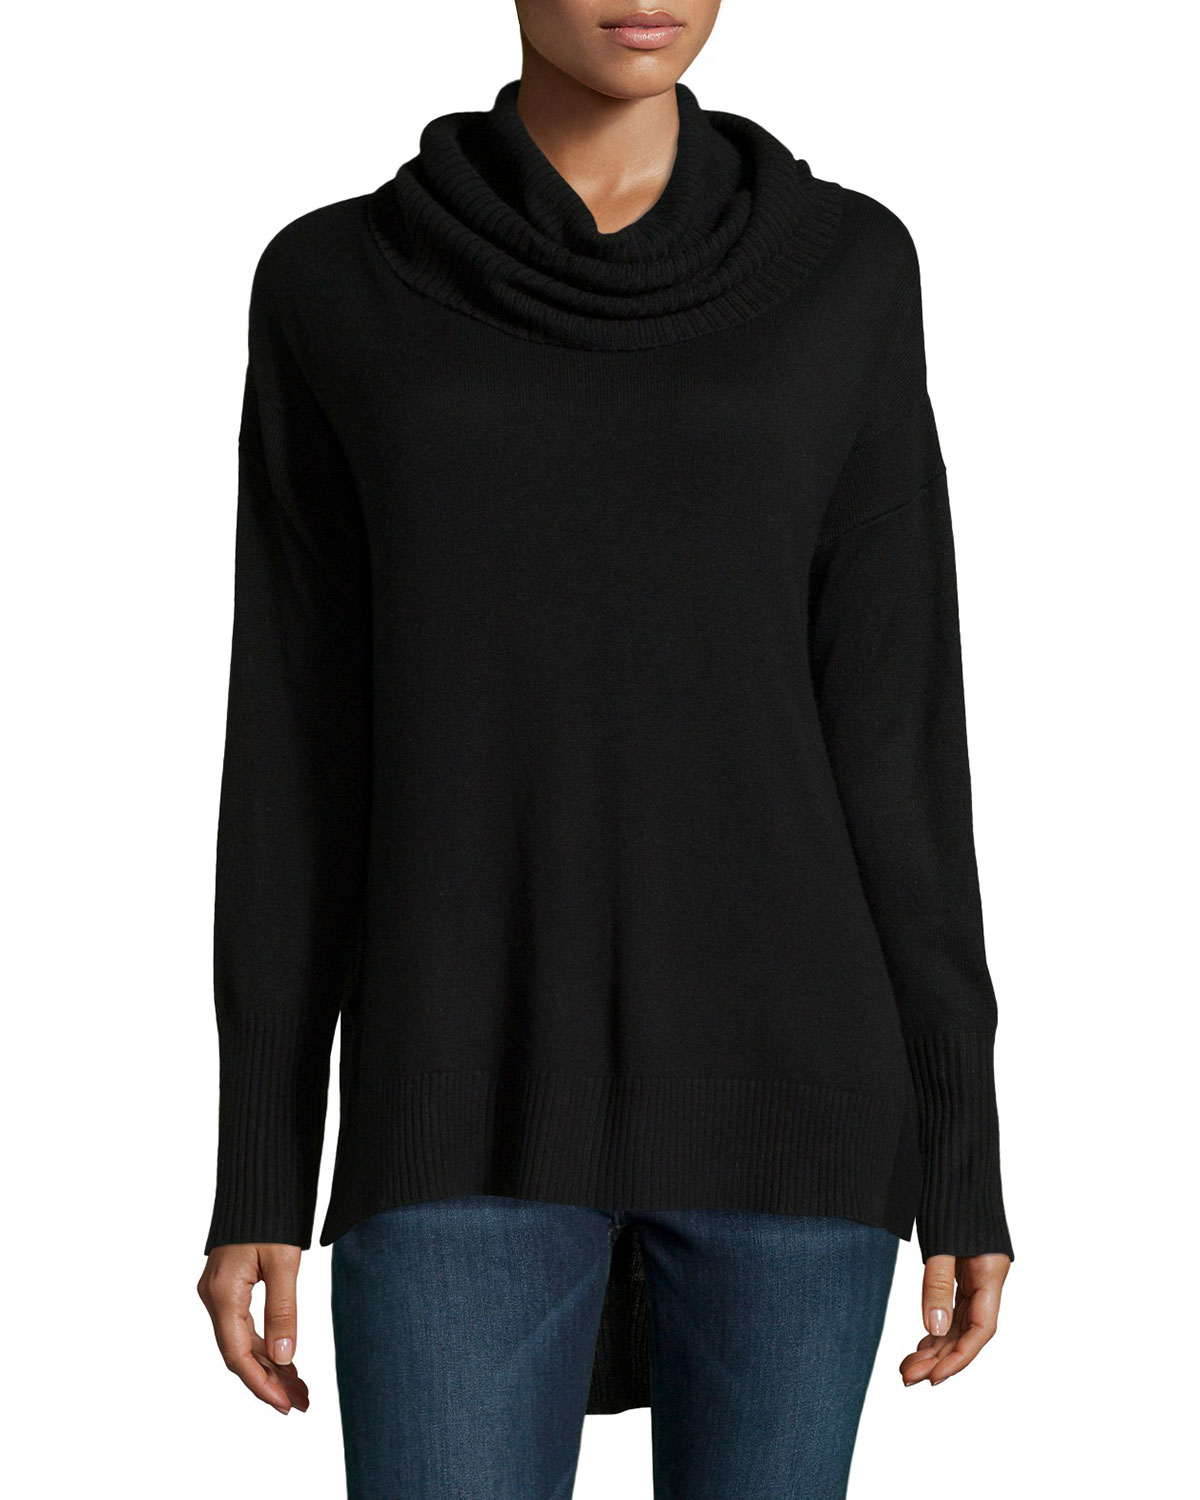 Neiman marcus Oversized Cowl-neck High-low Sweater in Black | Lyst